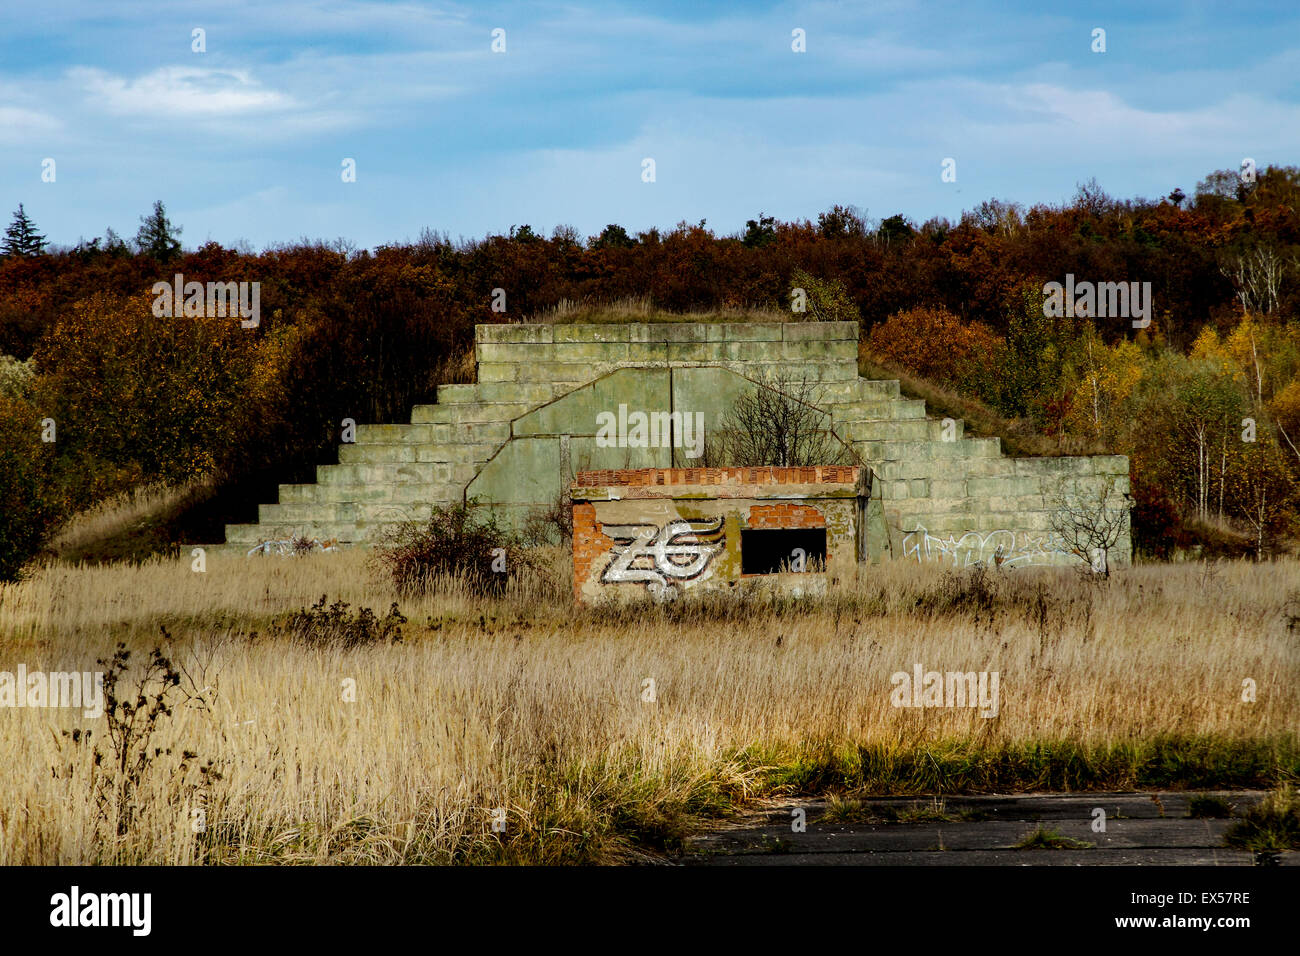 One of the many aircraft carriers on an abandoned Russian Military base in The Czech Republic. - Stock Image